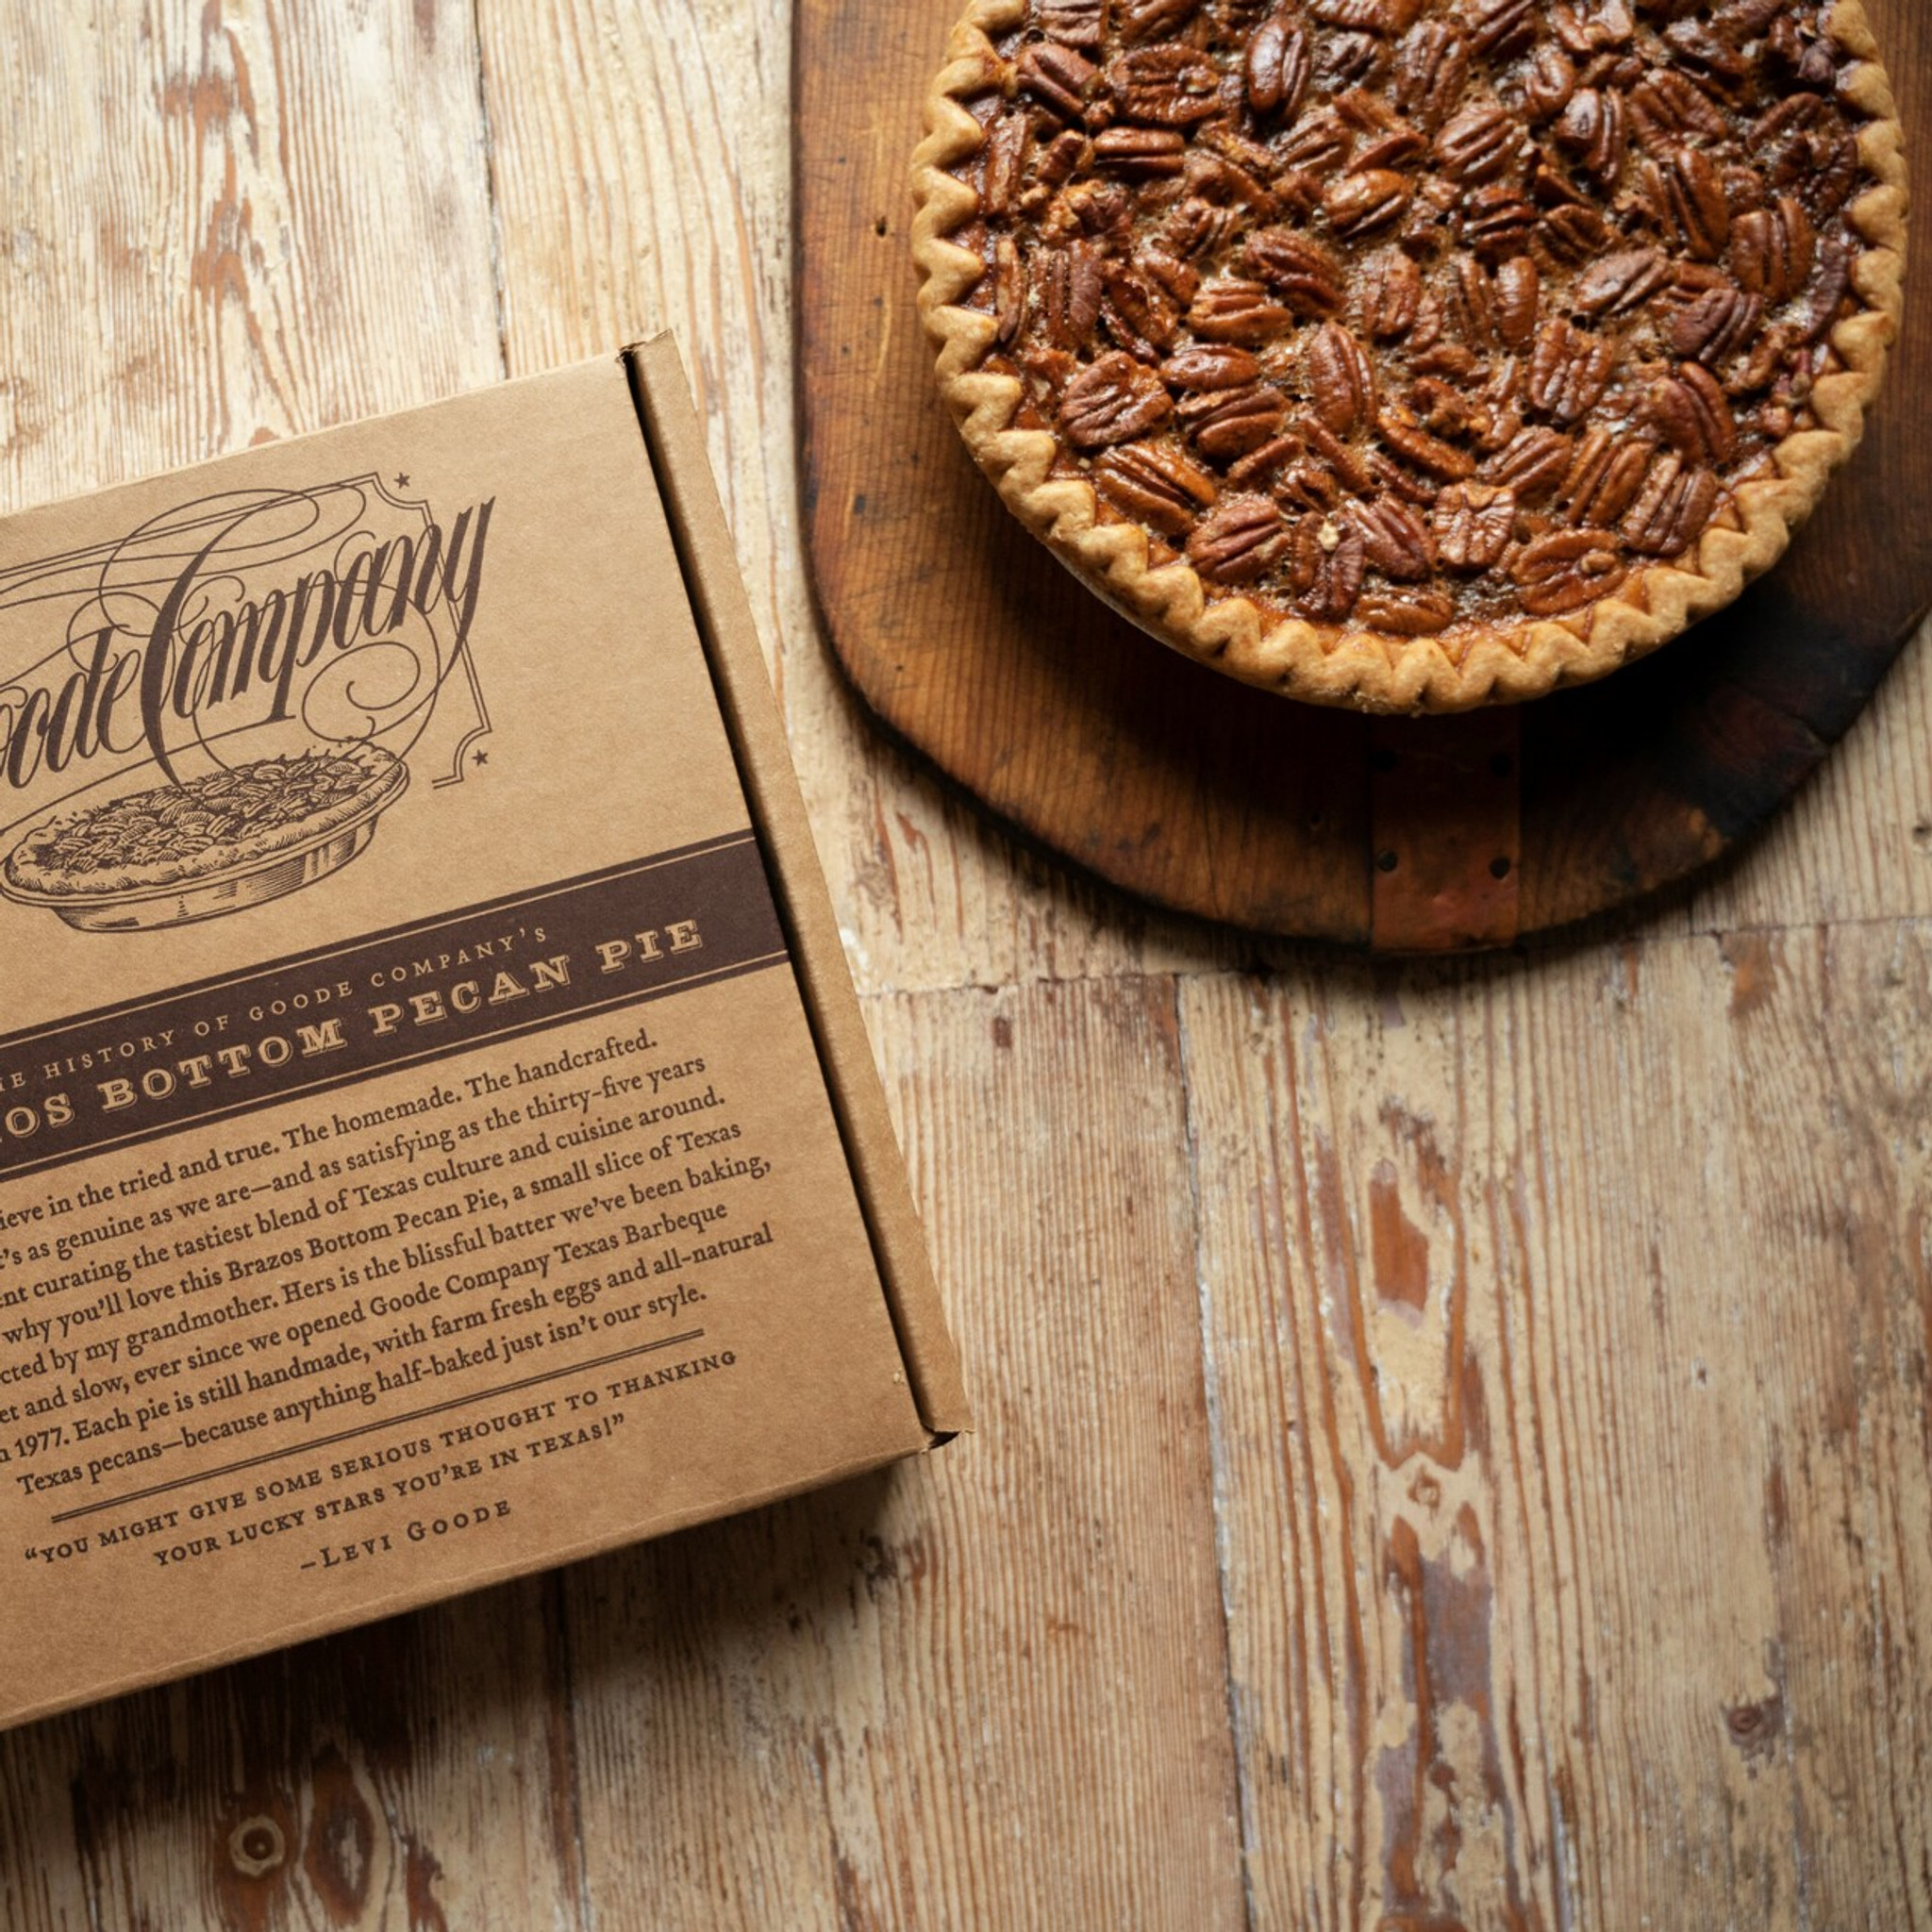 Brazos Bottom Pecan Pie shown on a wooden table next to the cardboard box that it is delivered in.